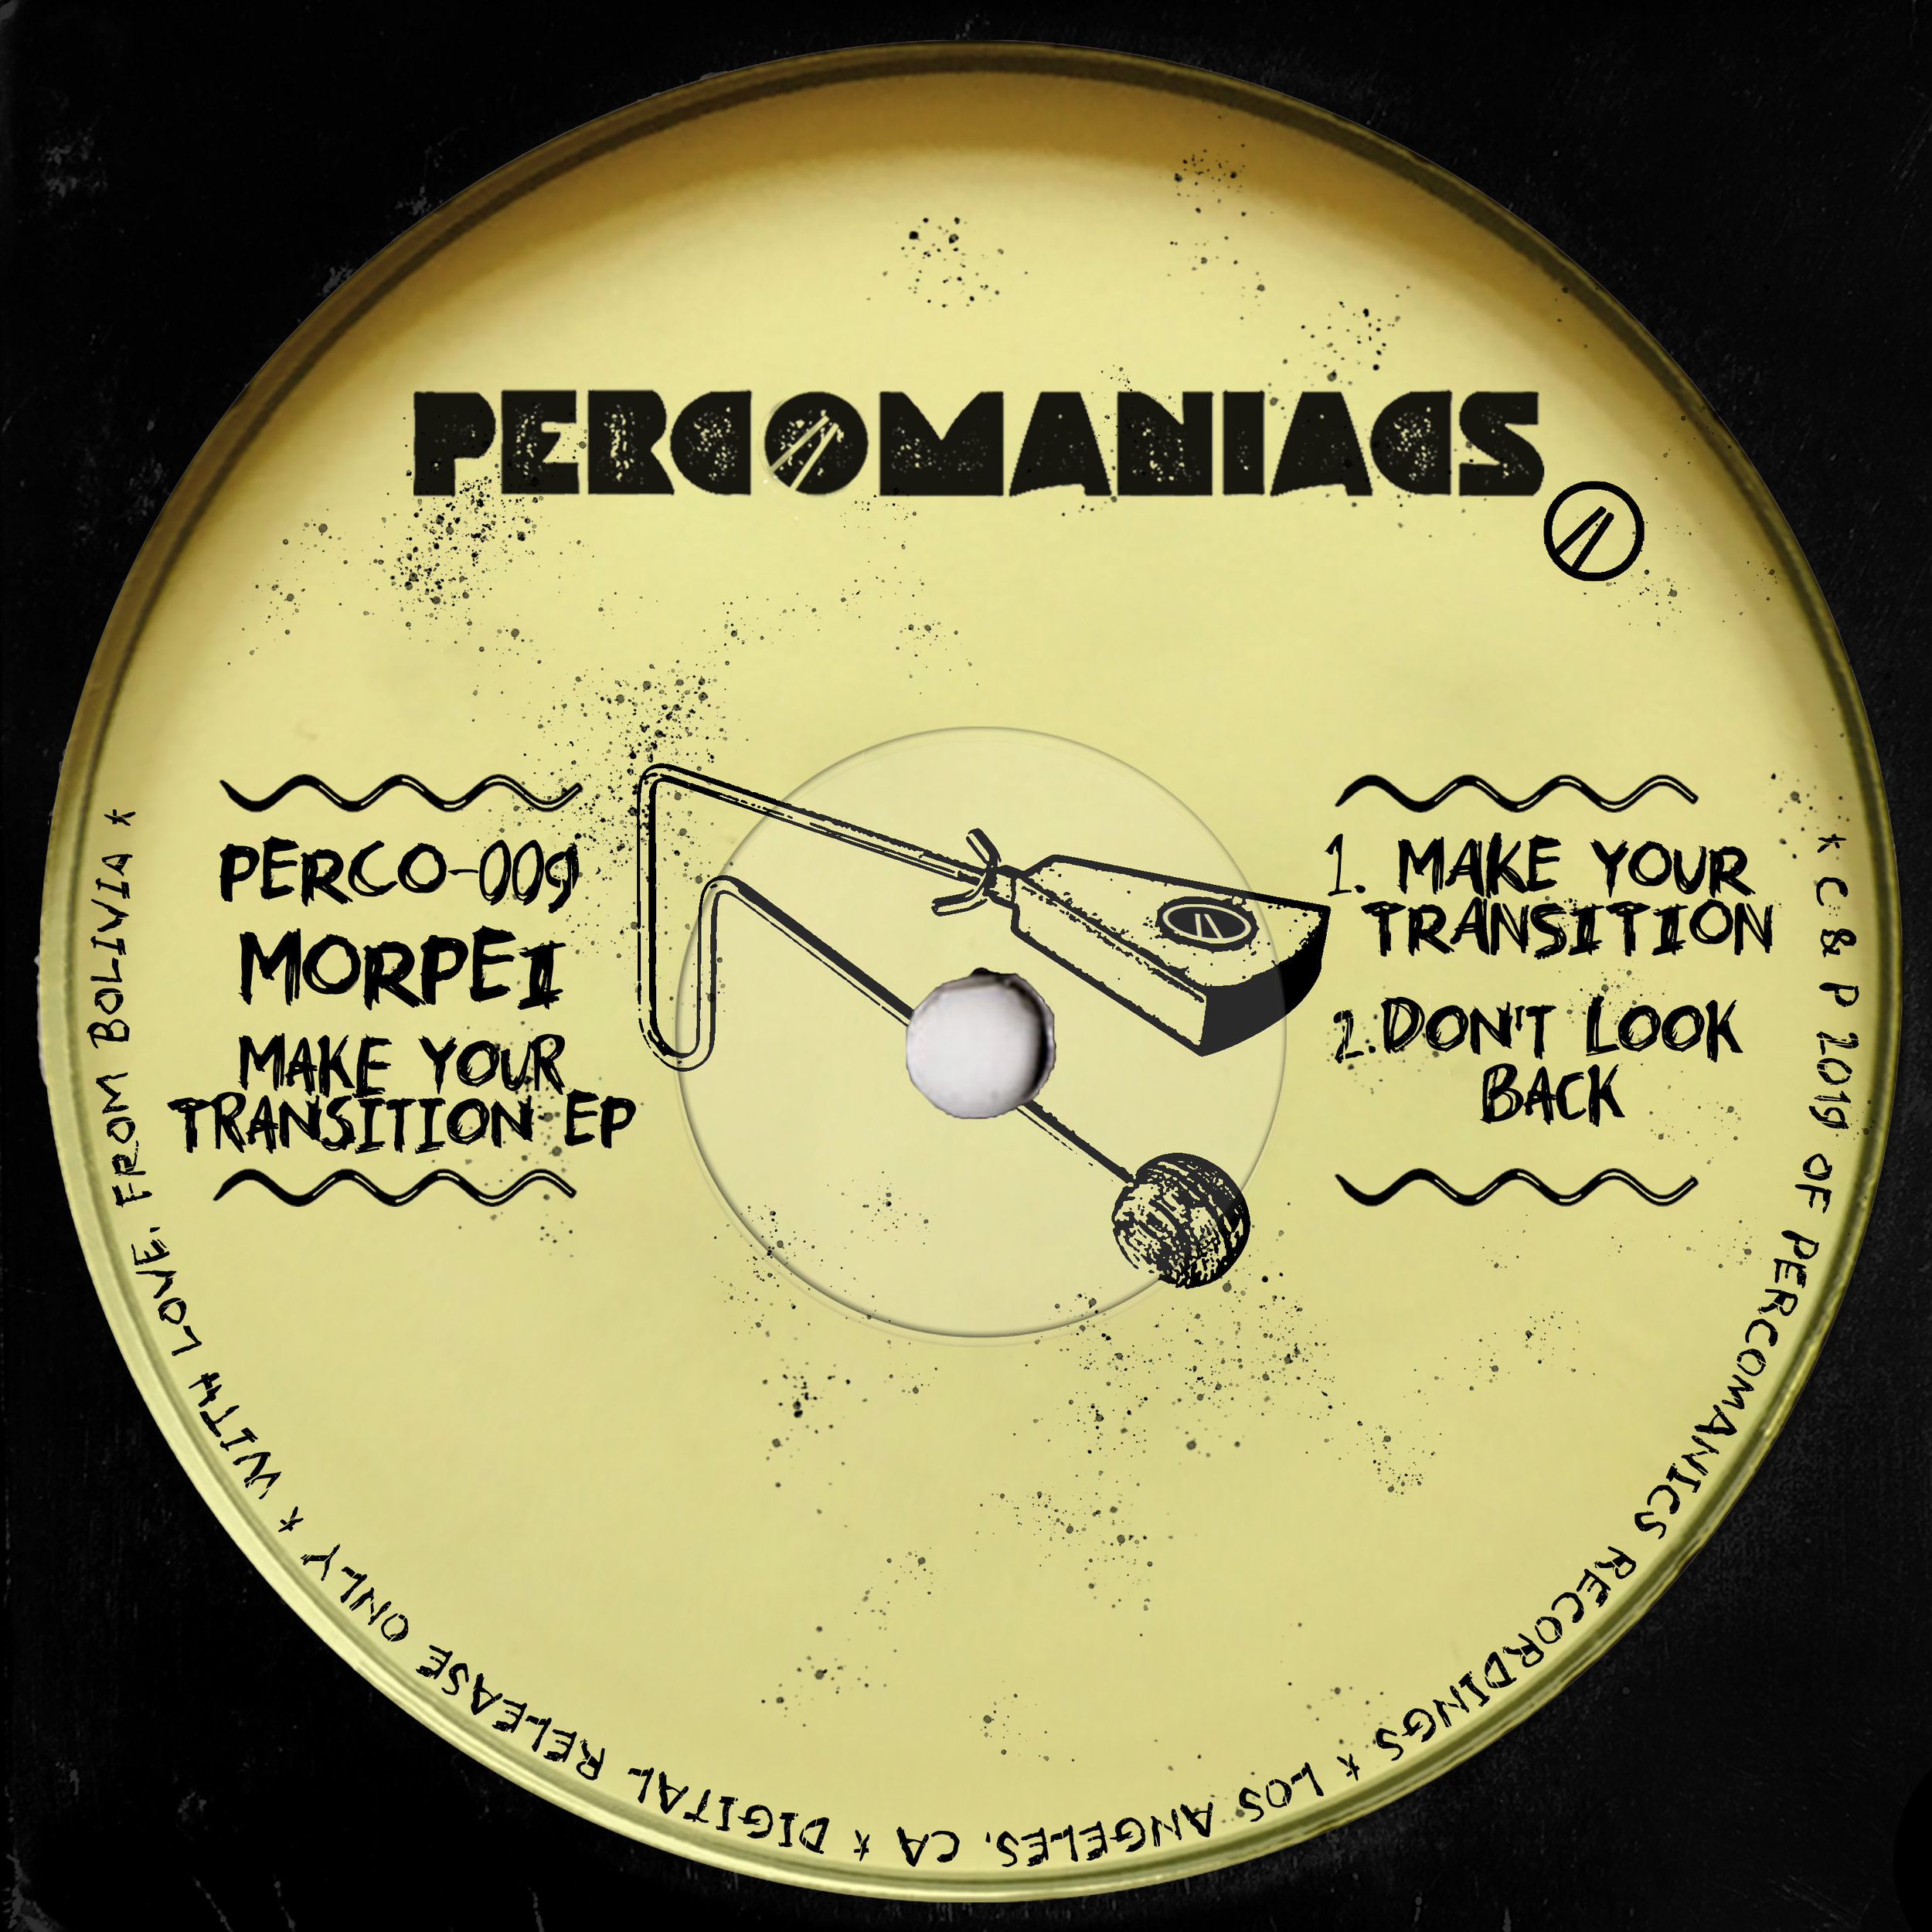 PERCO009 - MORPEI - MAKE YOUR TRANSITION EP